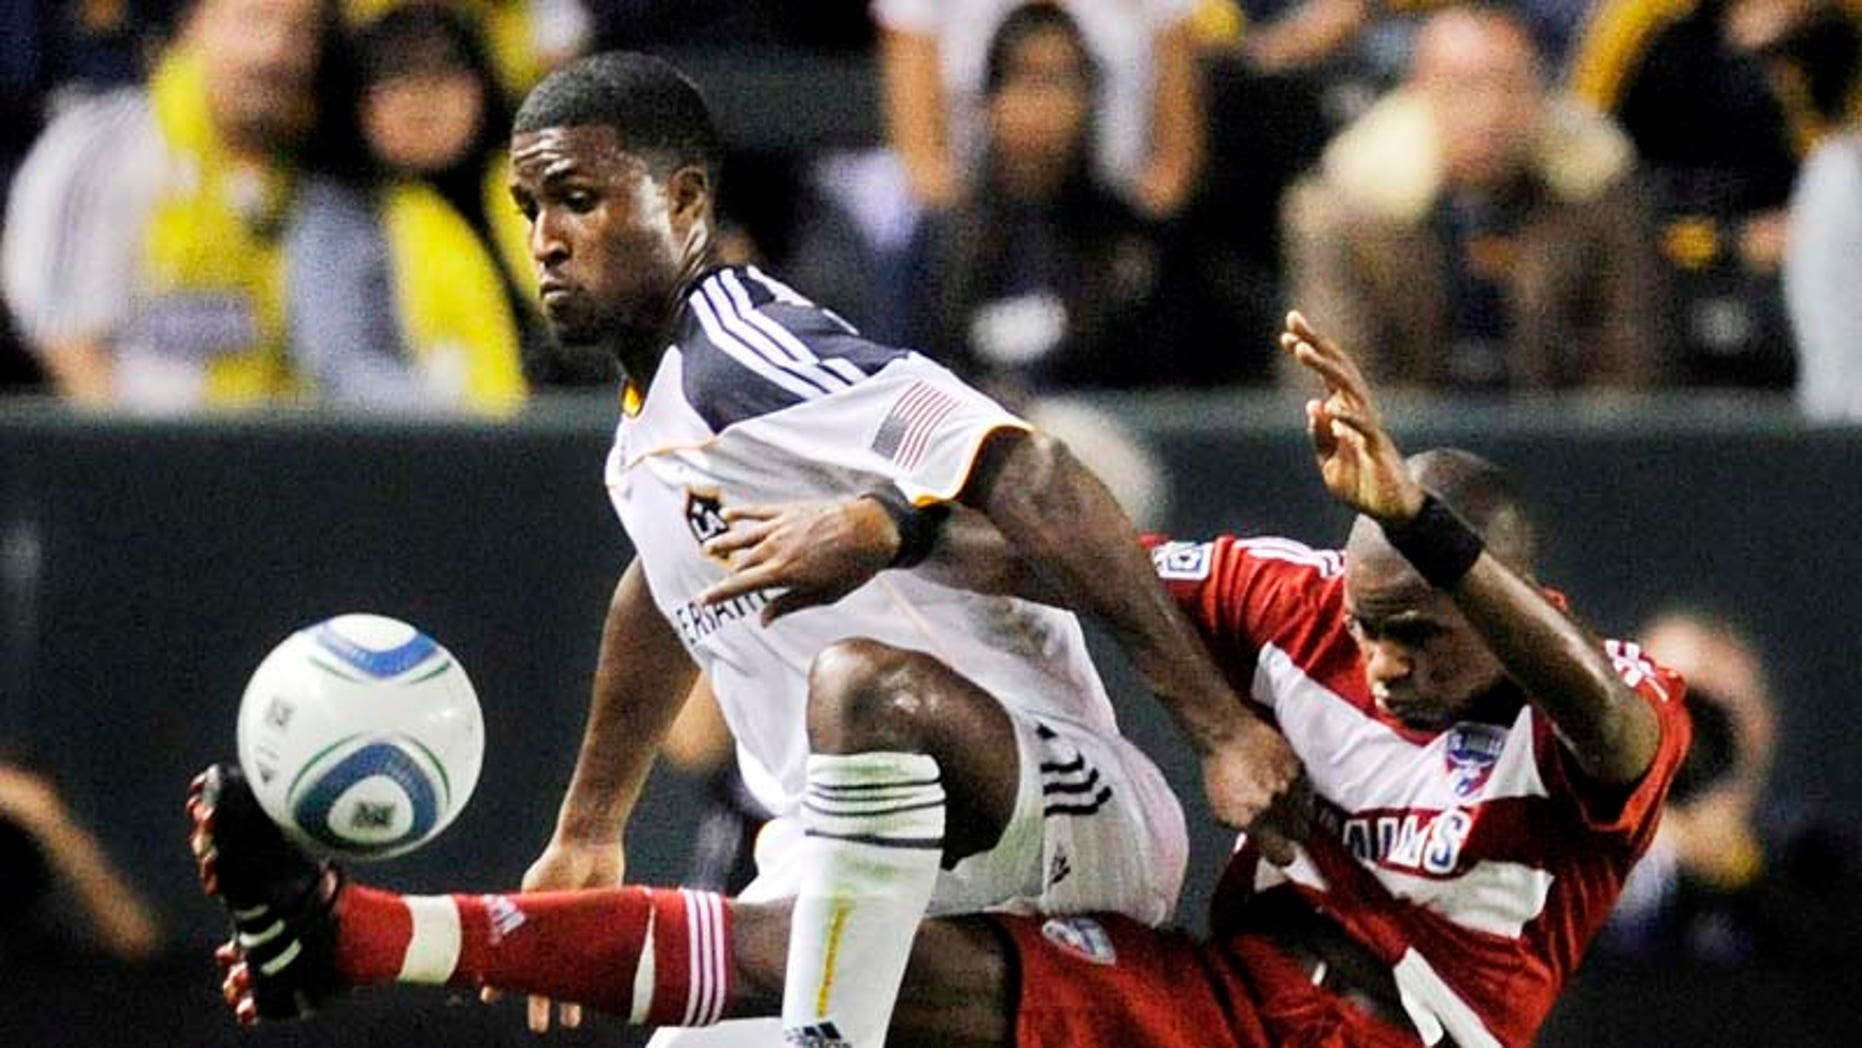 Los Angeles Galaxy forward Edson Buddle, left, and FC Dallas defender Jackson Goncalves battle for the ball during the first half of their MLS Western Conference Final playoff match, Sunday, Nov. 14, 2010, in Carson, Calif. (AP Photo/Mark J. Terrill)